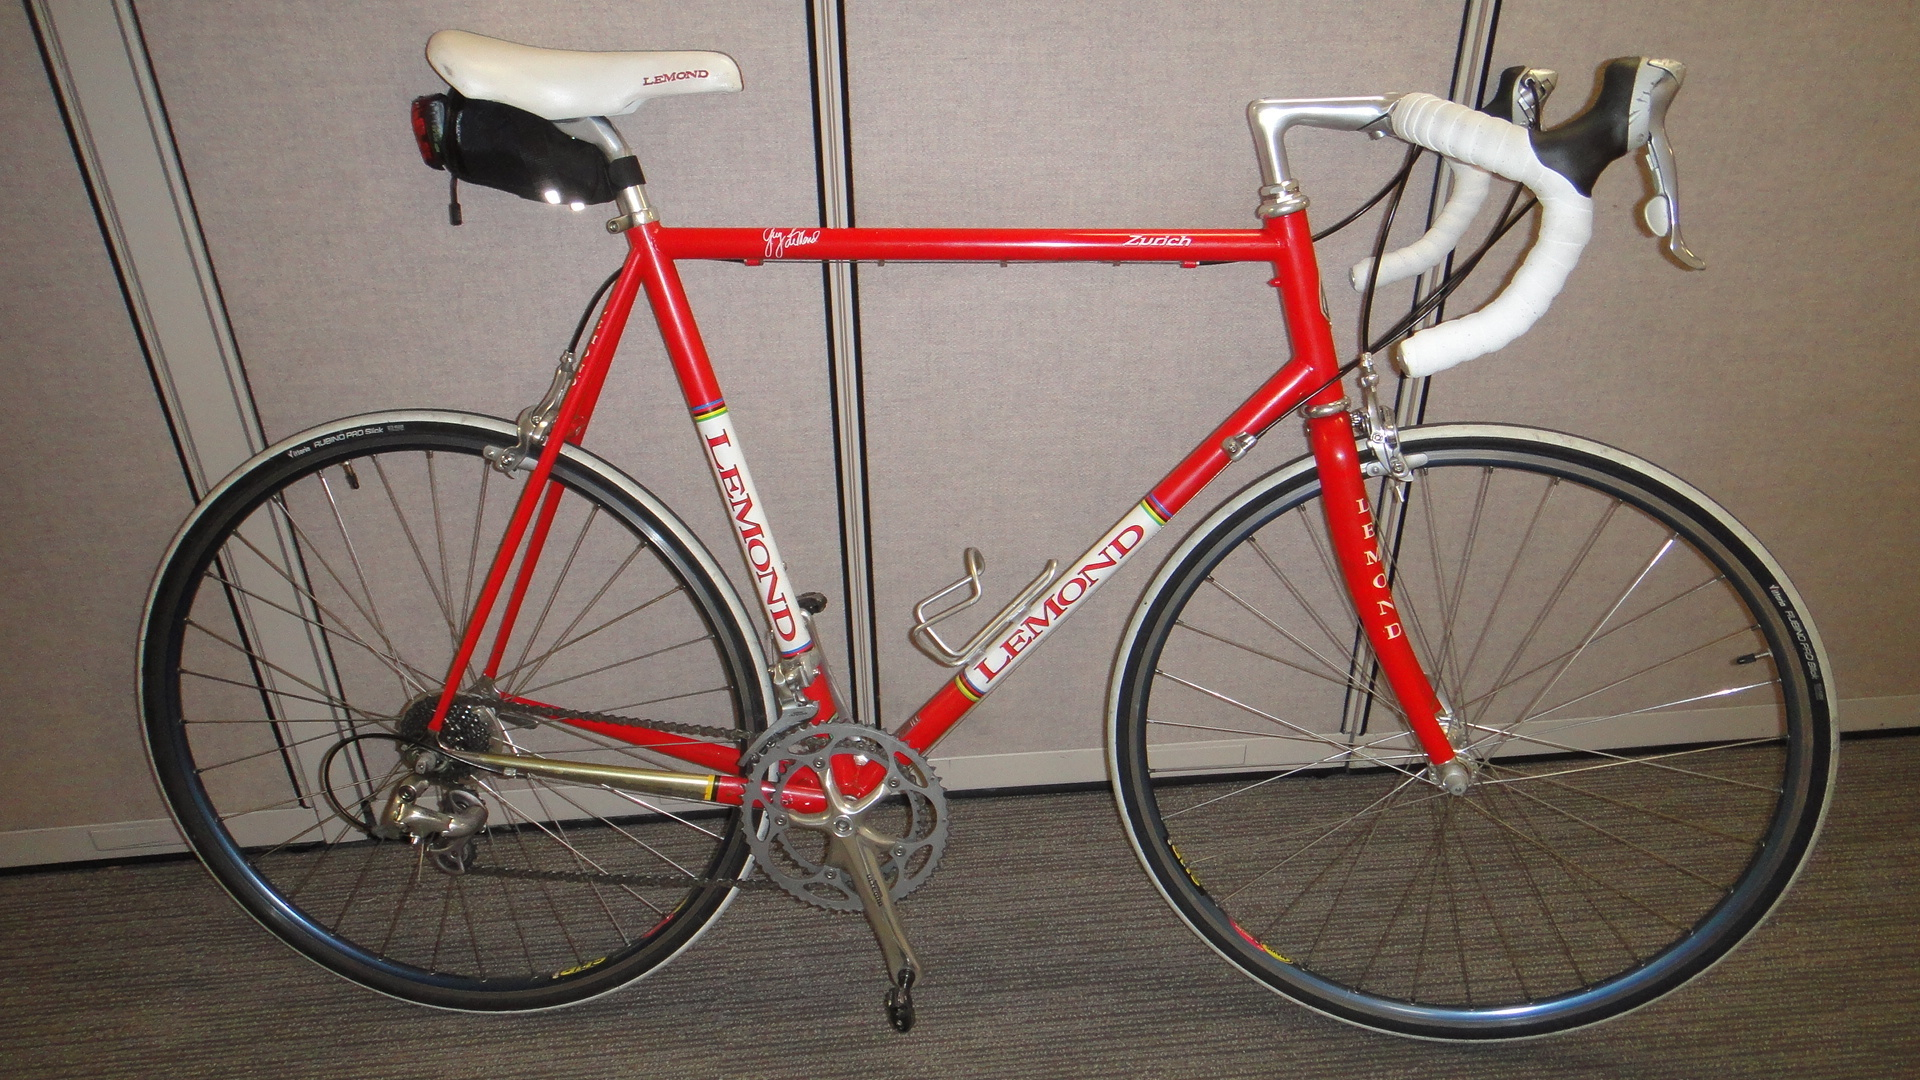 1997 LeMond Racing Cycles Zurich